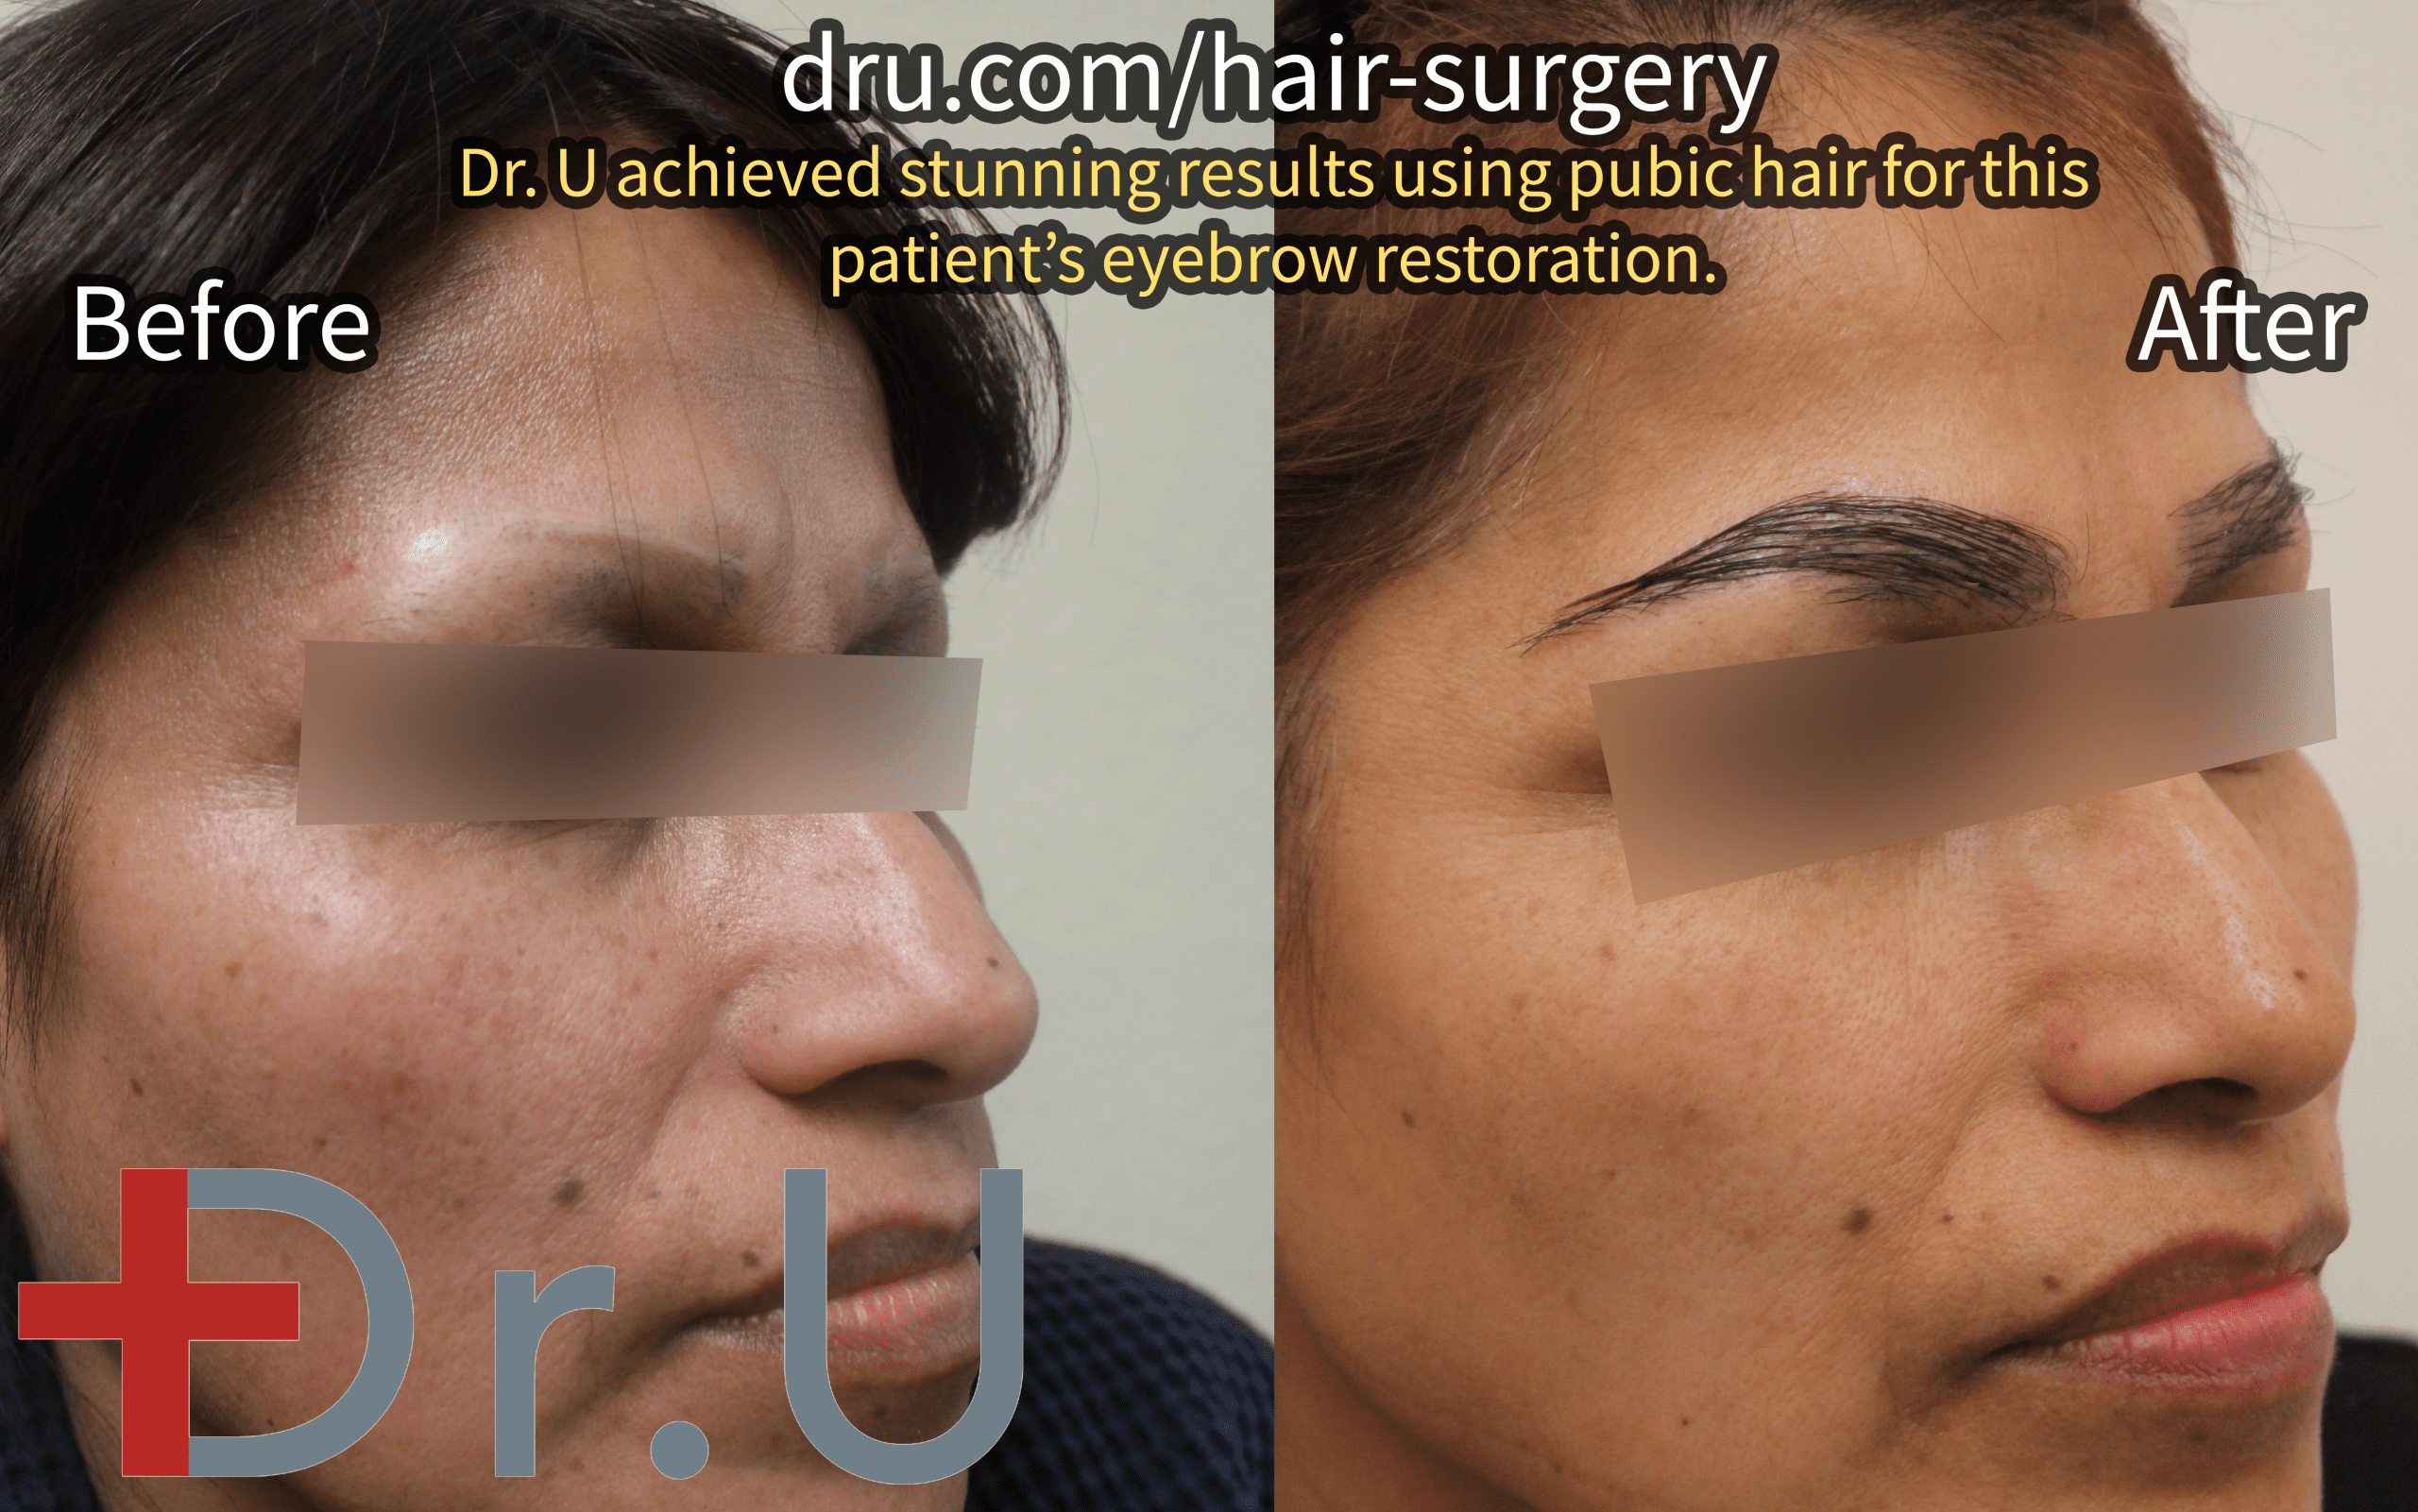 The patient's eyebrow scar repair before and after photos.*